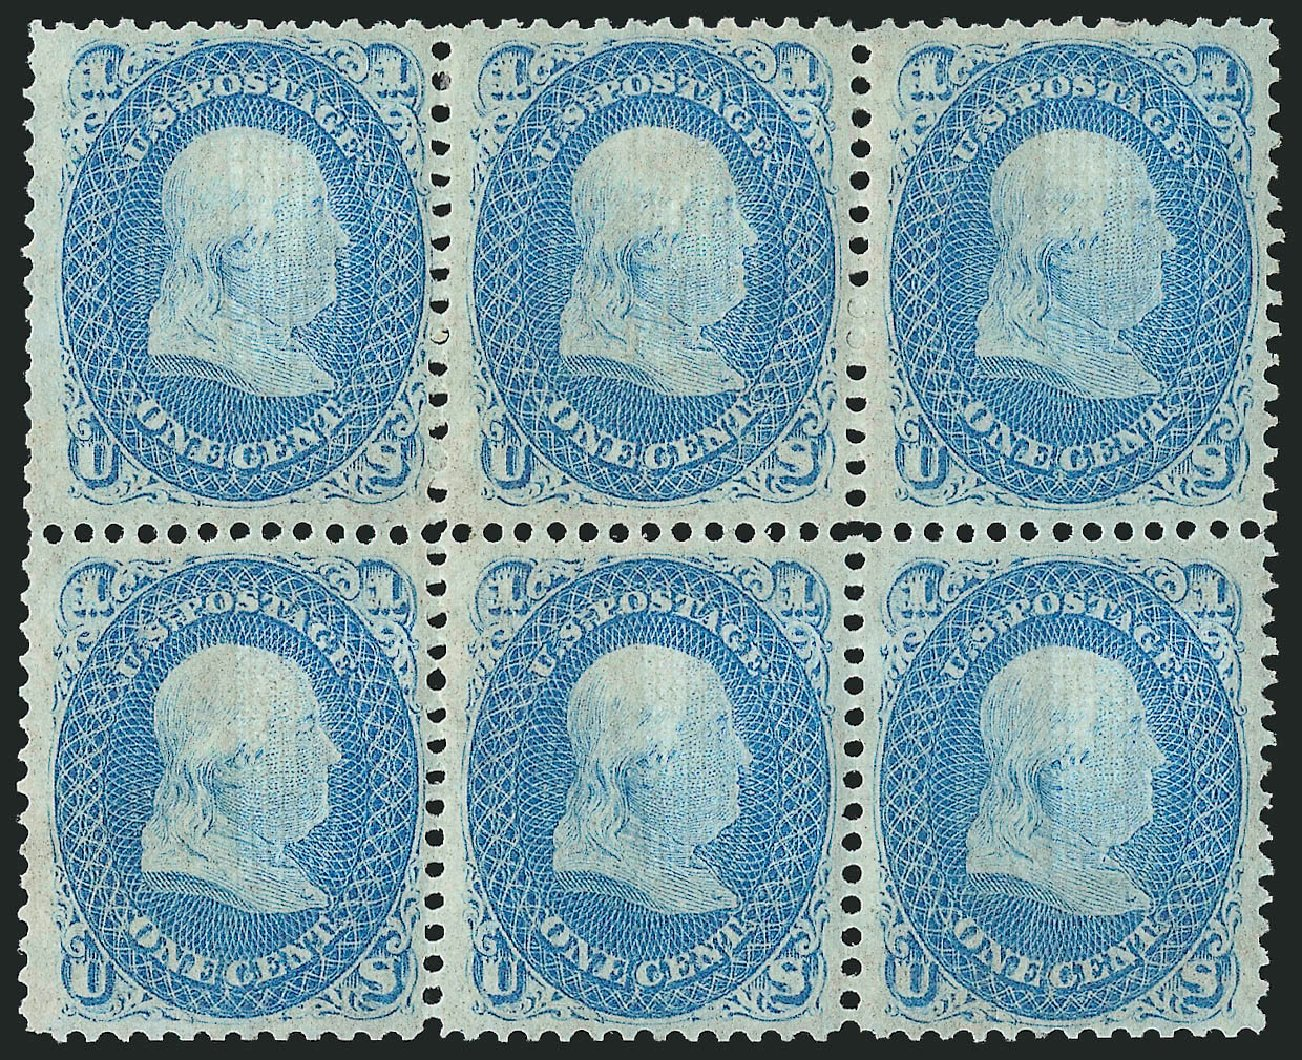 Price of US Stamp Scott Catalog #92 - 1c 1868 Franklin Grill. Robert Siegel Auction Galleries, Apr 2015, Sale 1096, Lot 178